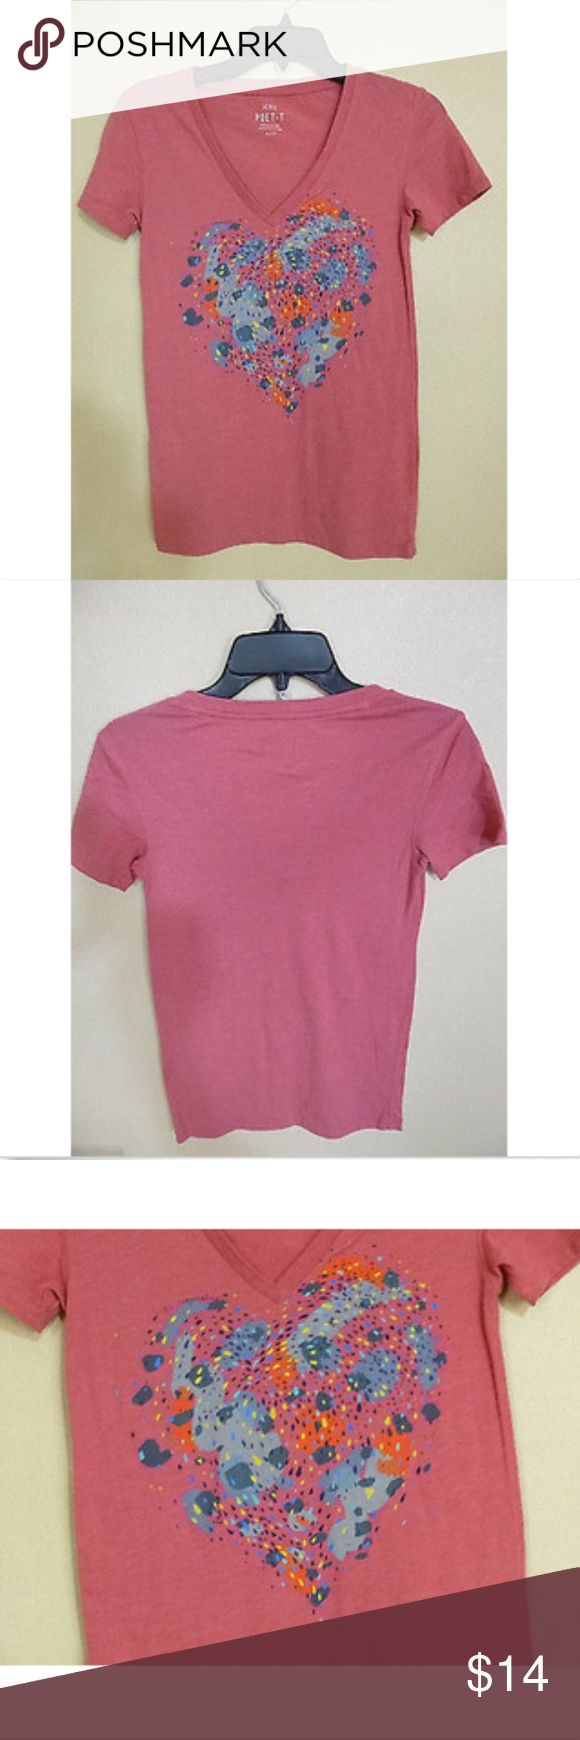 """Aerie Poet-T Womens T-shirt Sz XS Pink Brand:  Aerie Poet-T  Condition:  Pre-owned  Details:  Womens T-shirt, pink, short sleeve, graphic splatters in the shape of a heart with the words """"It's Complicated""""  V-neck  Stated Tag Size: XS  Length:  24"""" Chest:  28""""  Material:  60% Cotton, 40% Polyester Inventory #-- 02017 aerie Tops Tees - Short Sleeve"""